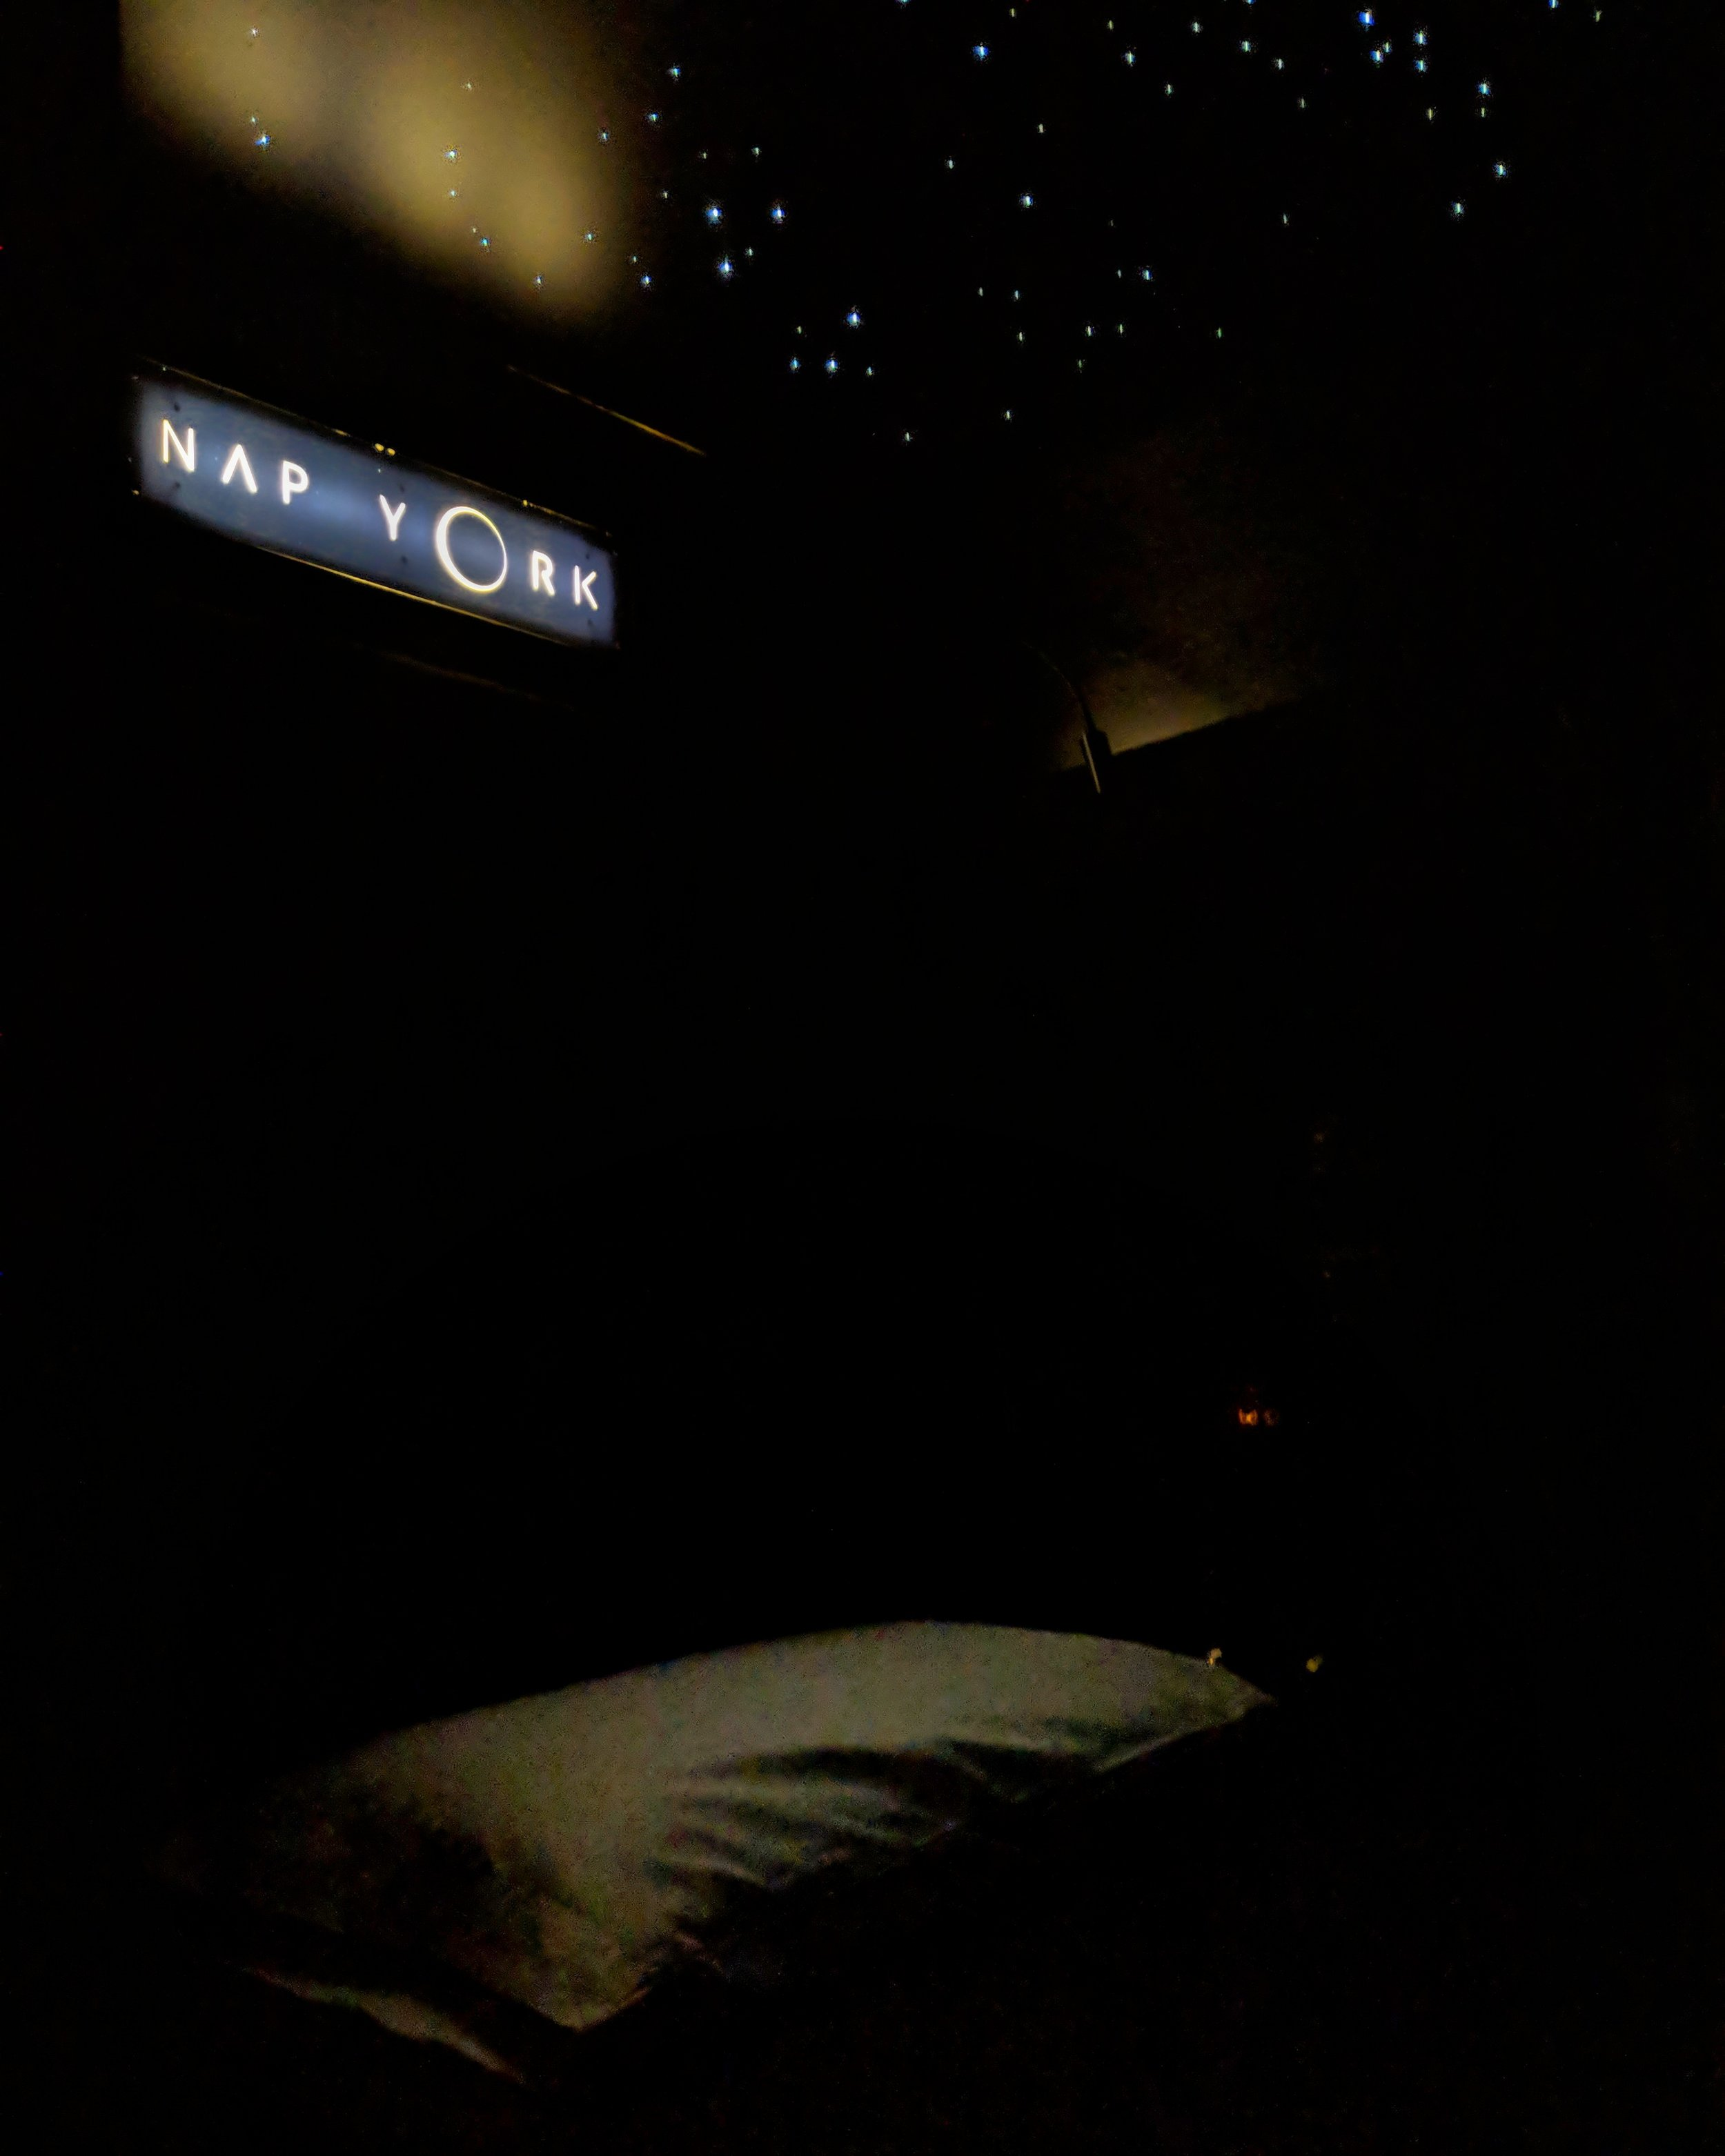 My pod with the lights out, minus the stars above the bed.